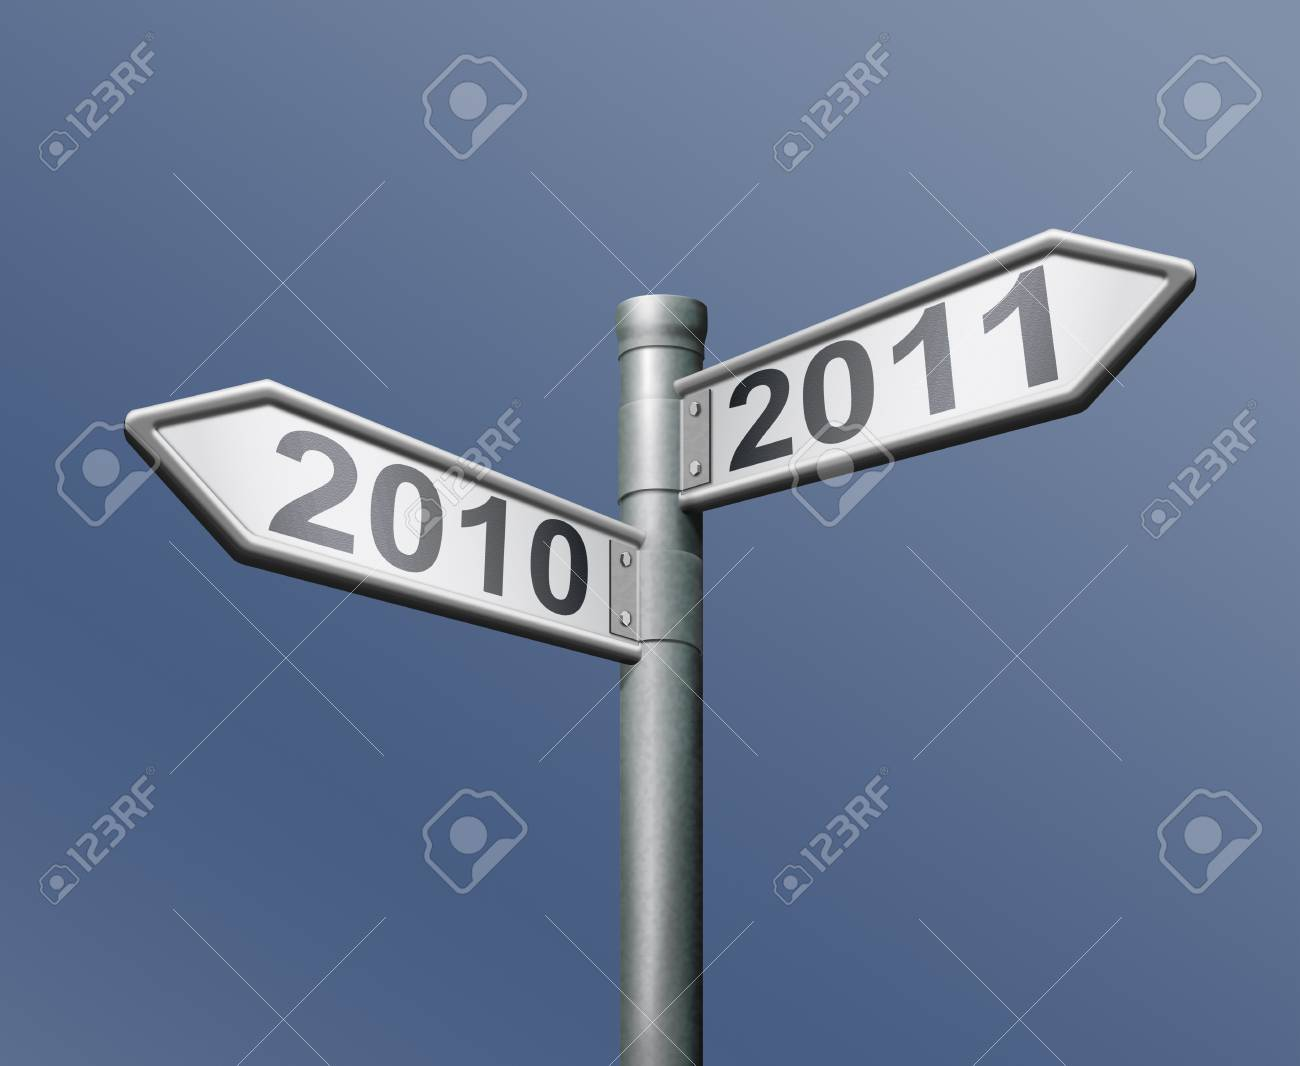 road sign two arrows indicating to past and future 2010 and 2011 old to new year Stock Photo - 8363712